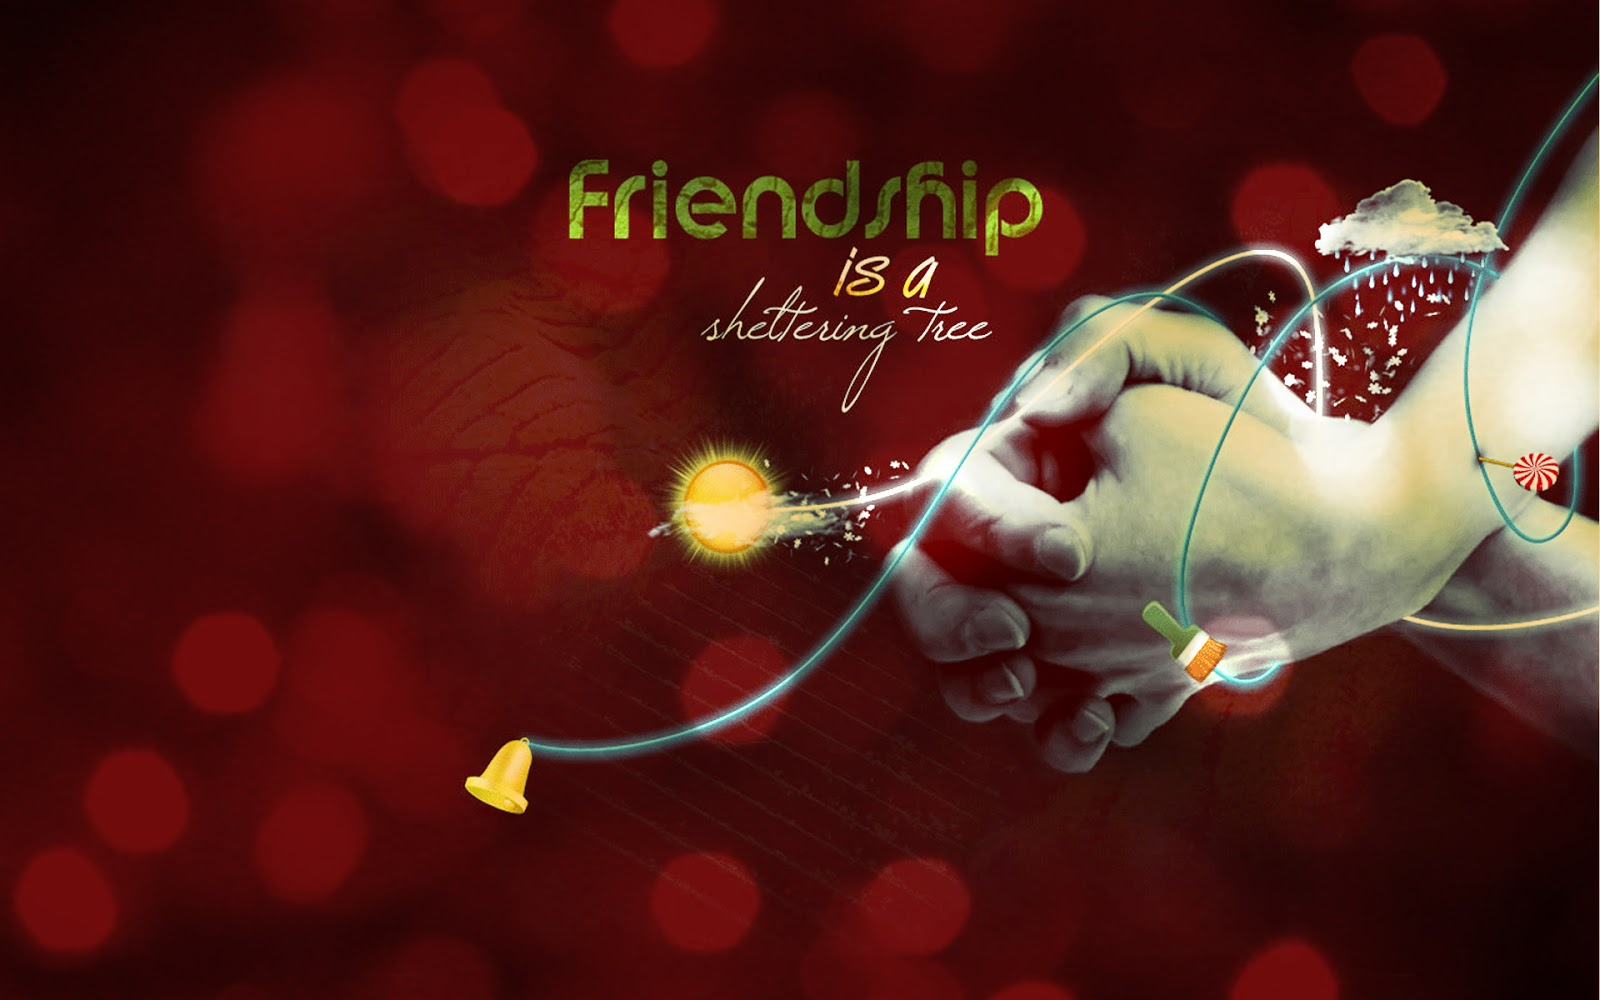 Boy And Girl Friendship Wallpaper Download Lovely Friendship Day Images Crazy Friendship Festival